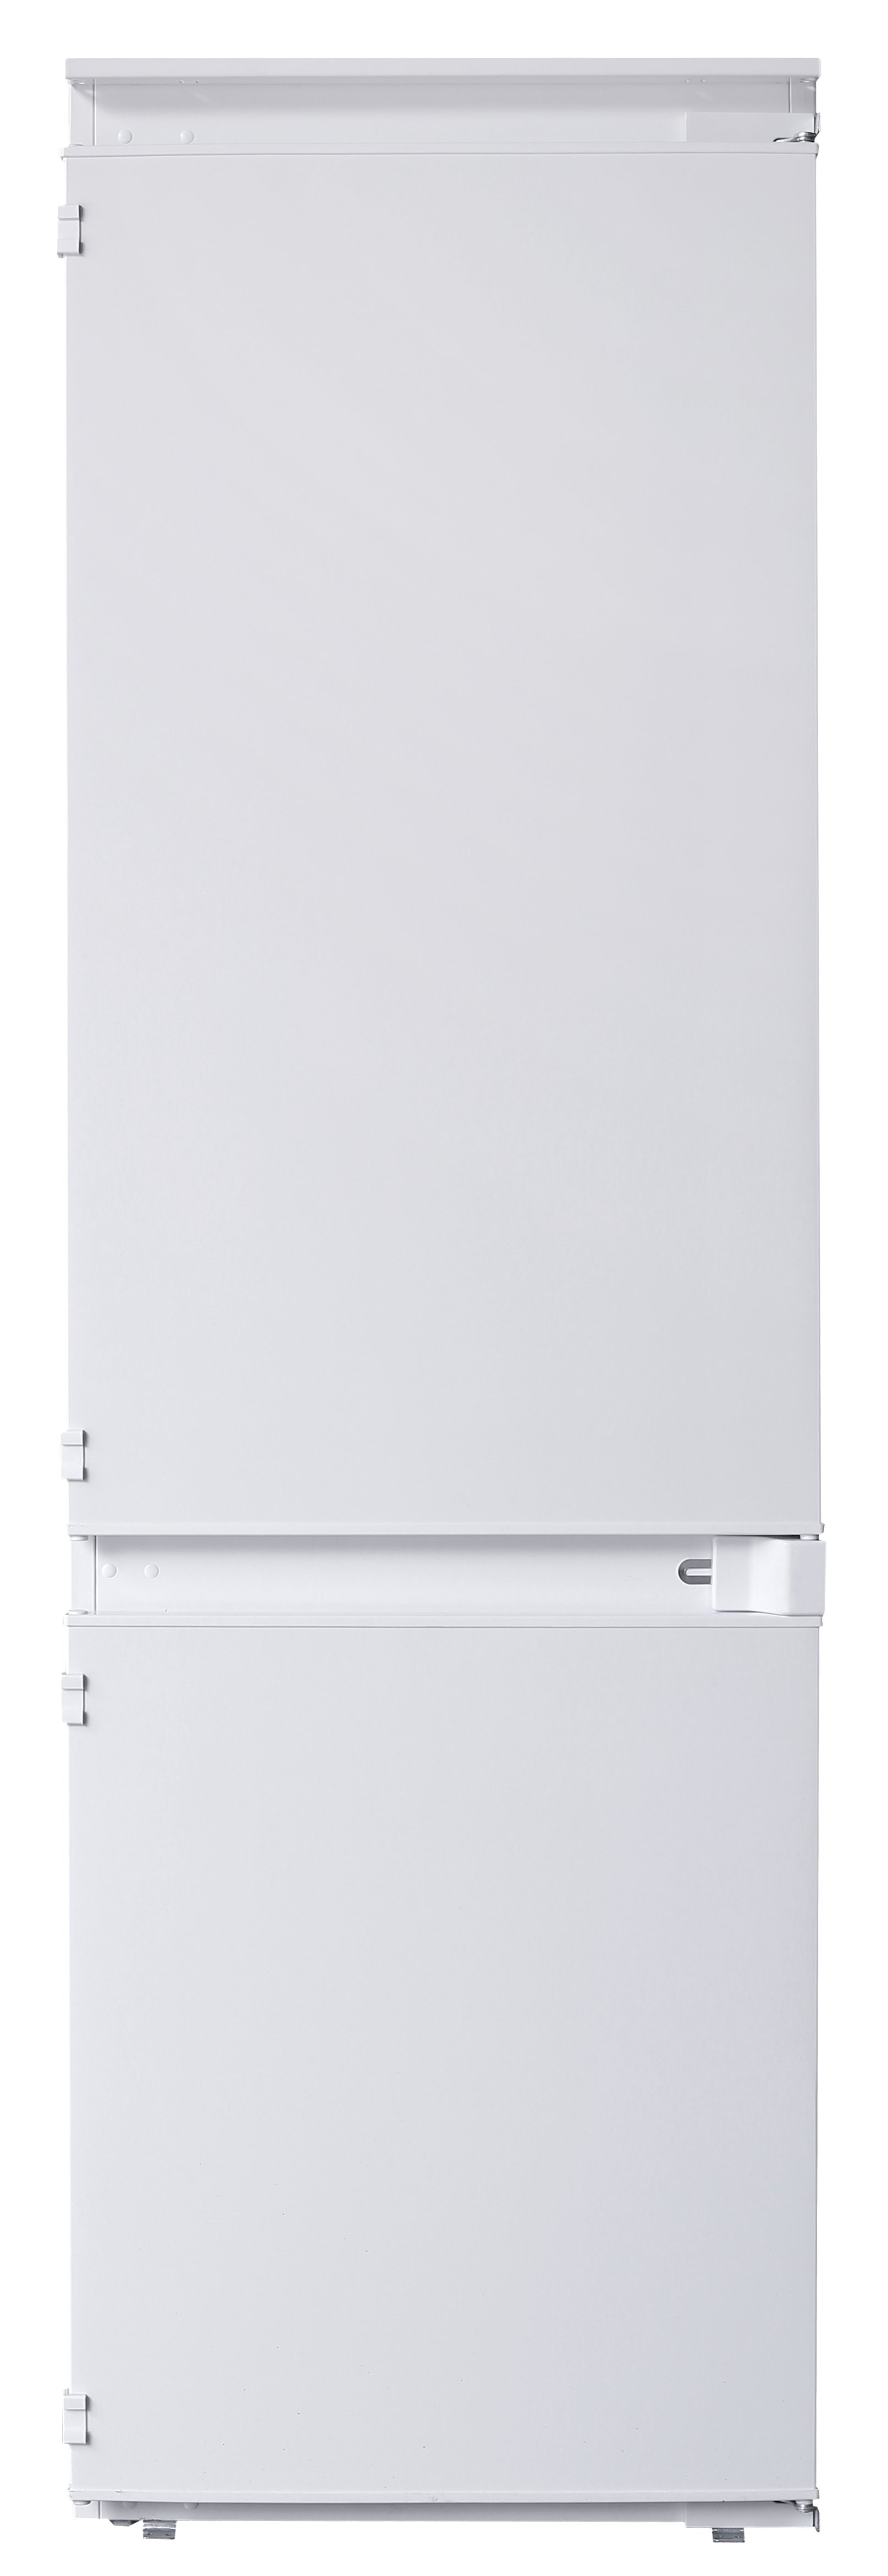 Russell Hobbs RHBI7030FF55-177 Integrated Fridge Freezer. from Russell hobbs